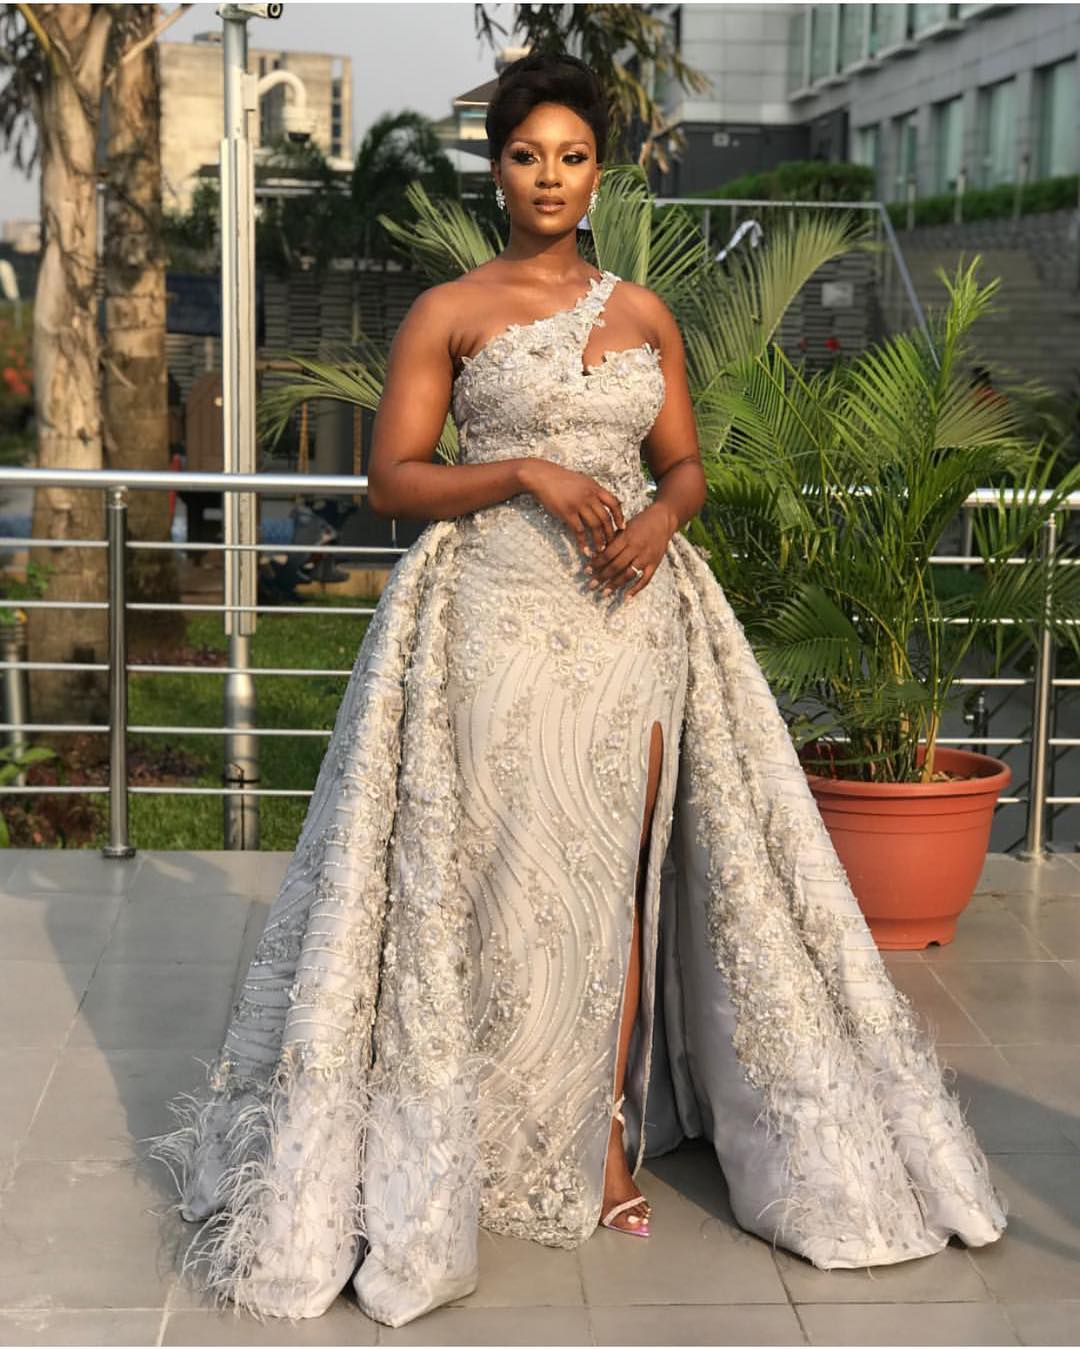 Kamdora Wedding 6 Wedding Reception Dresses Every Bride Needs Kamdora